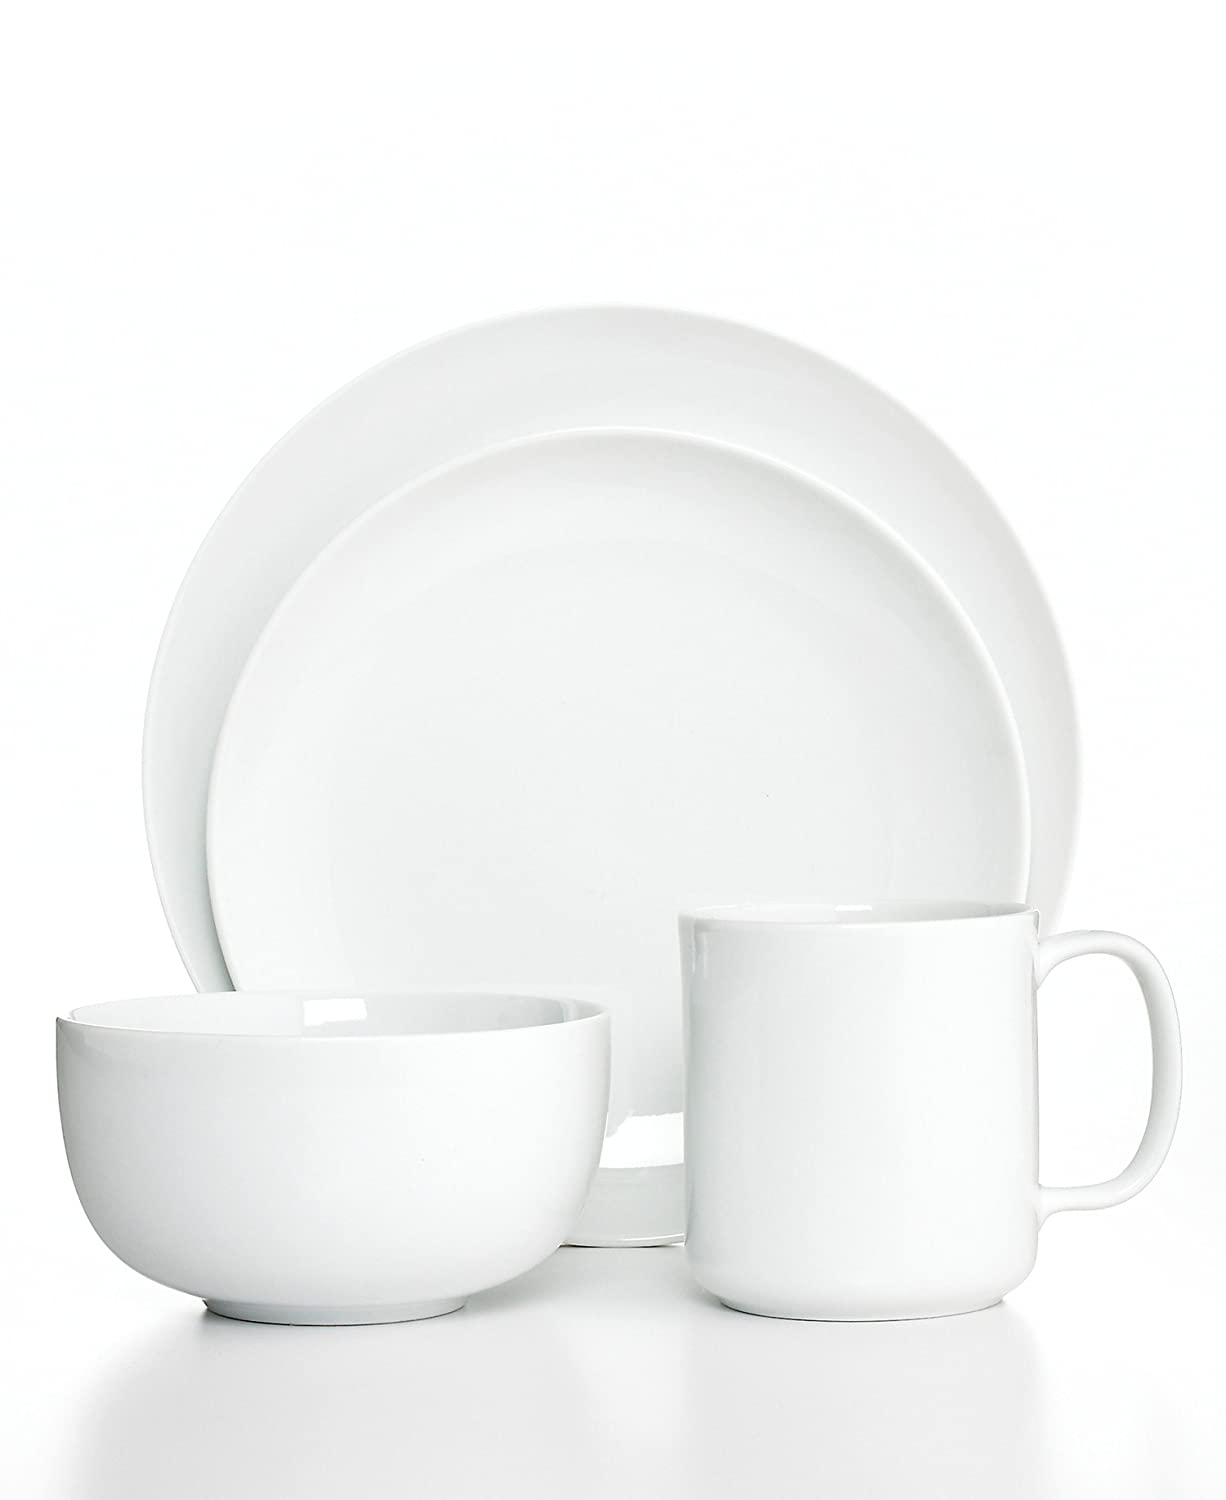 Amazon.com | The Cellar Dinnerware Whiteware Coupe 4 Piece Place Setting Dinnerware Sets  sc 1 st  Amazon.com & Amazon.com | The Cellar Dinnerware Whiteware Coupe 4 Piece Place ...